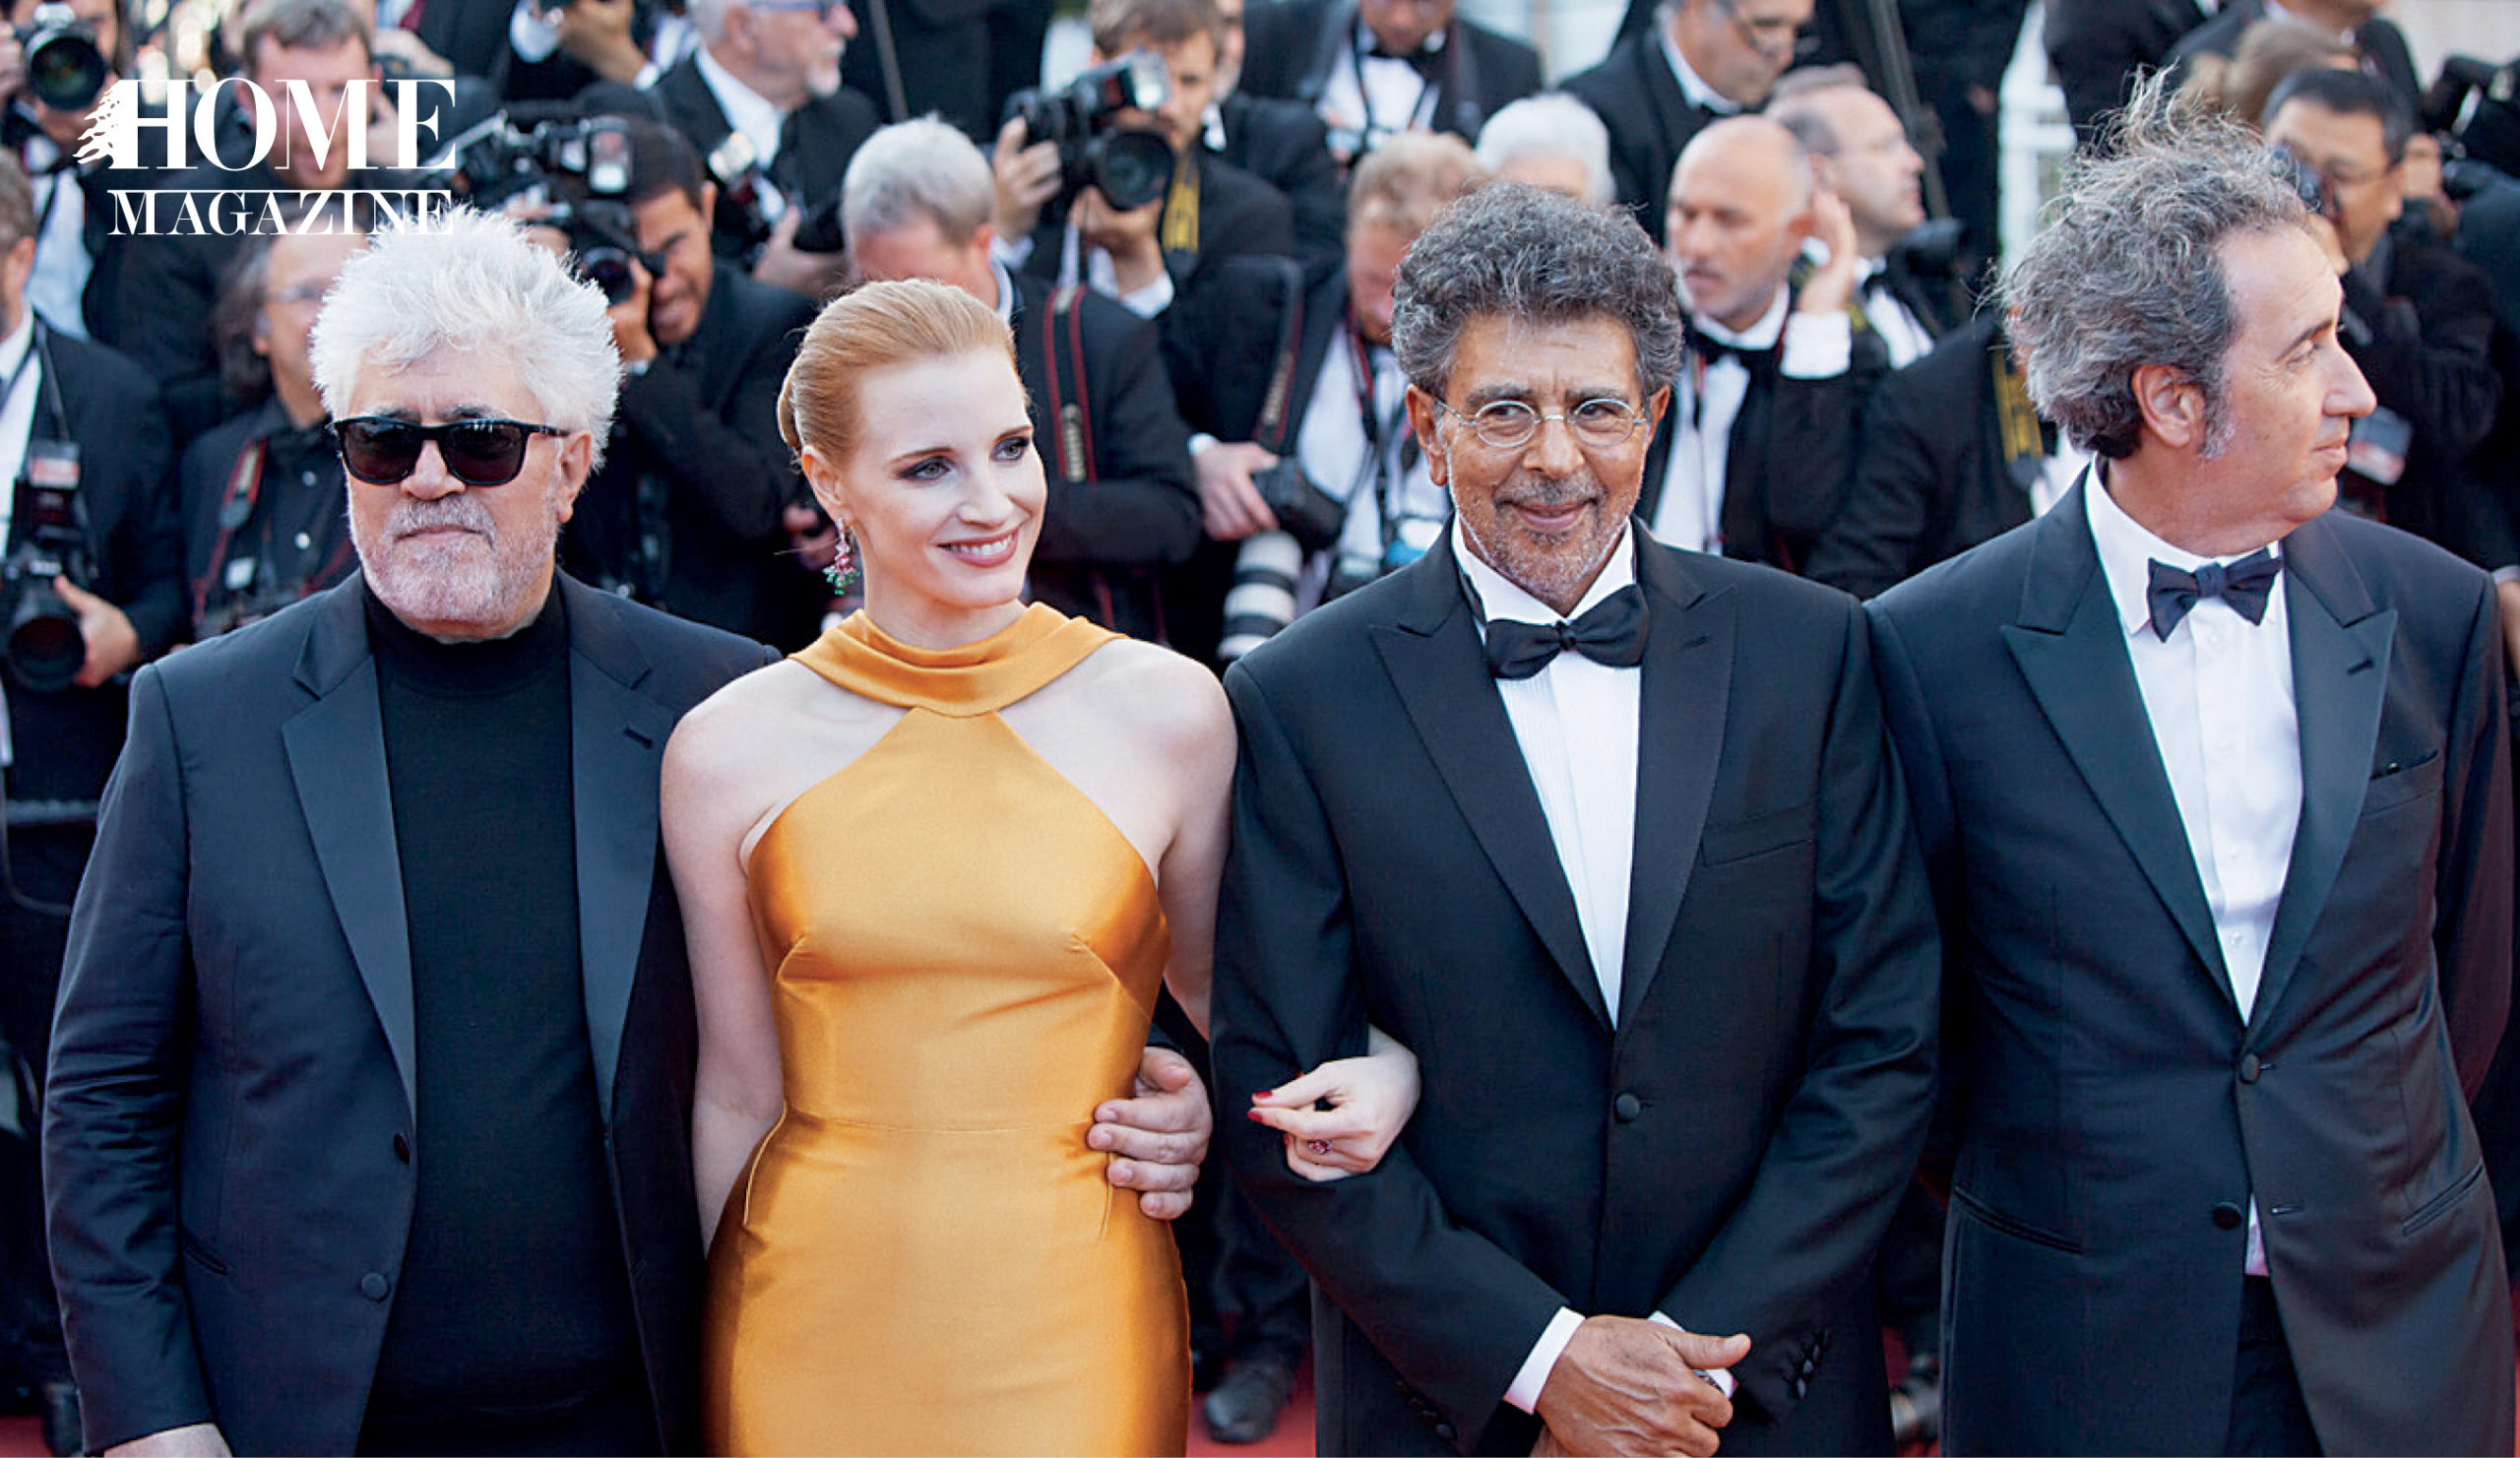 Three men in suits and a lady in an orange dress